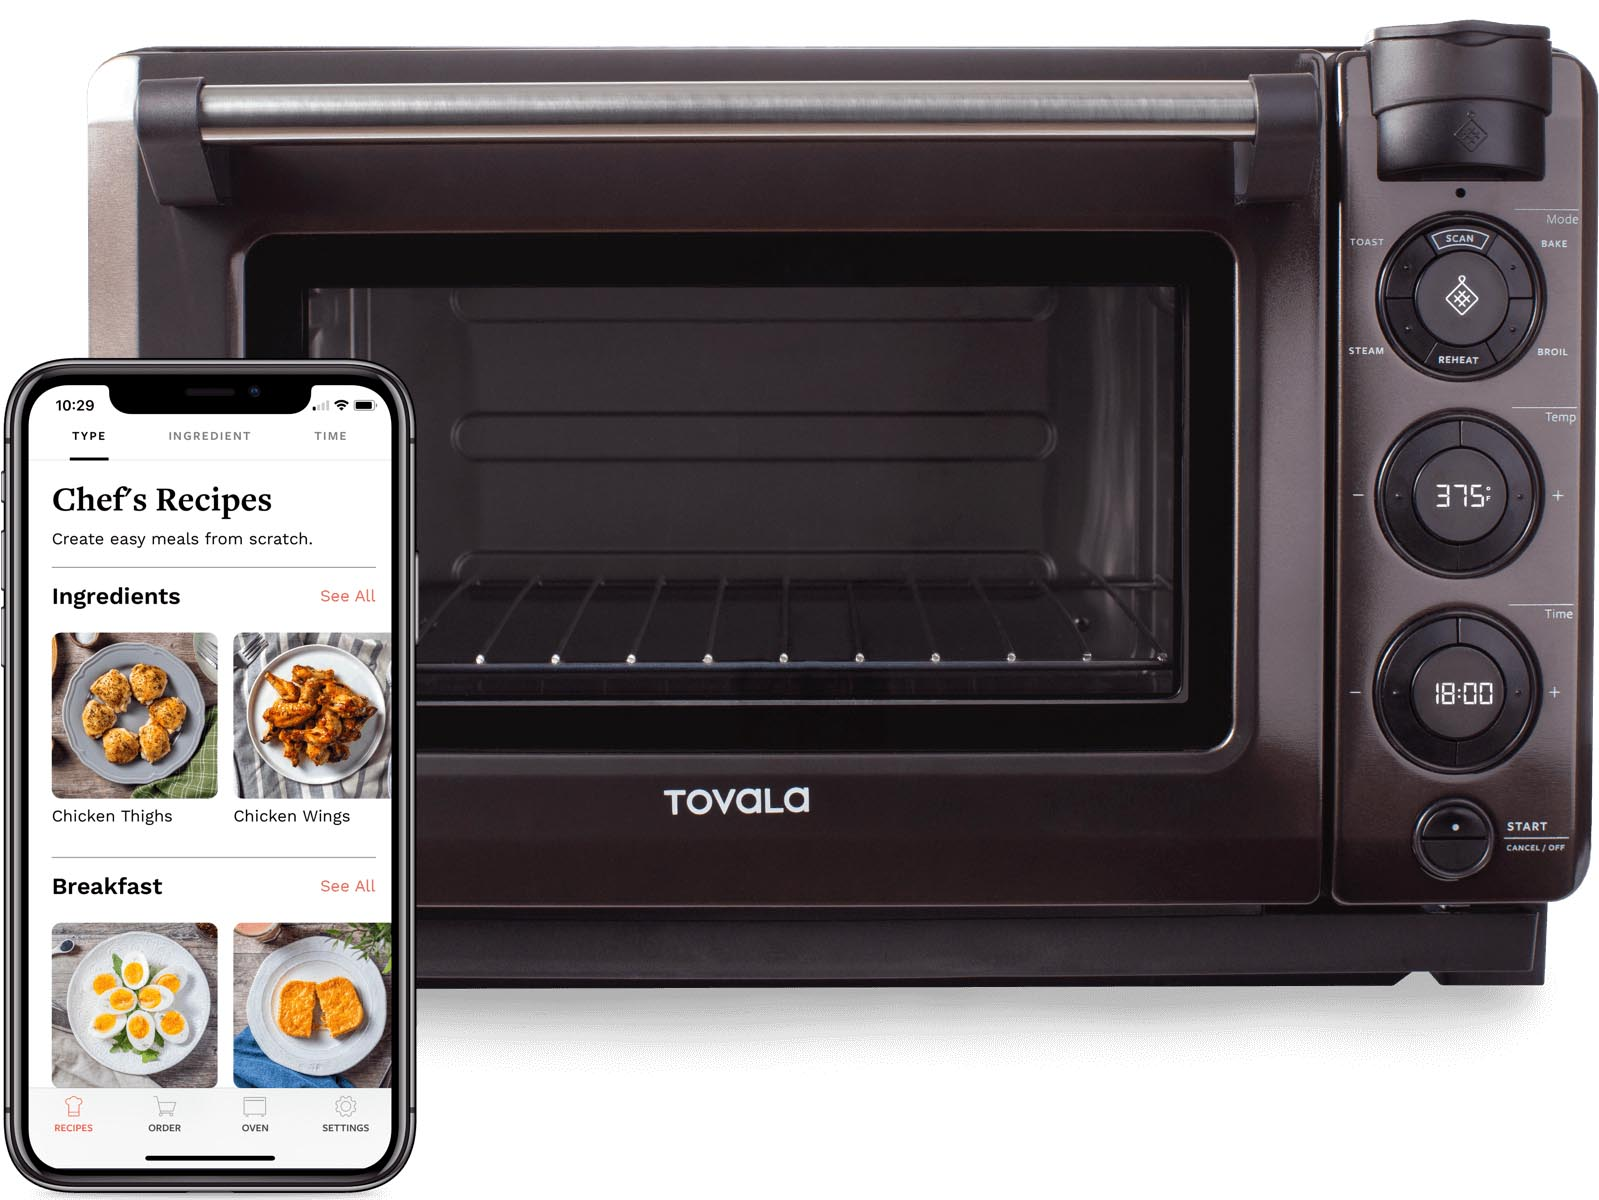 Tovala Steam Oven and Tovala App displaying Chef's Recipes.